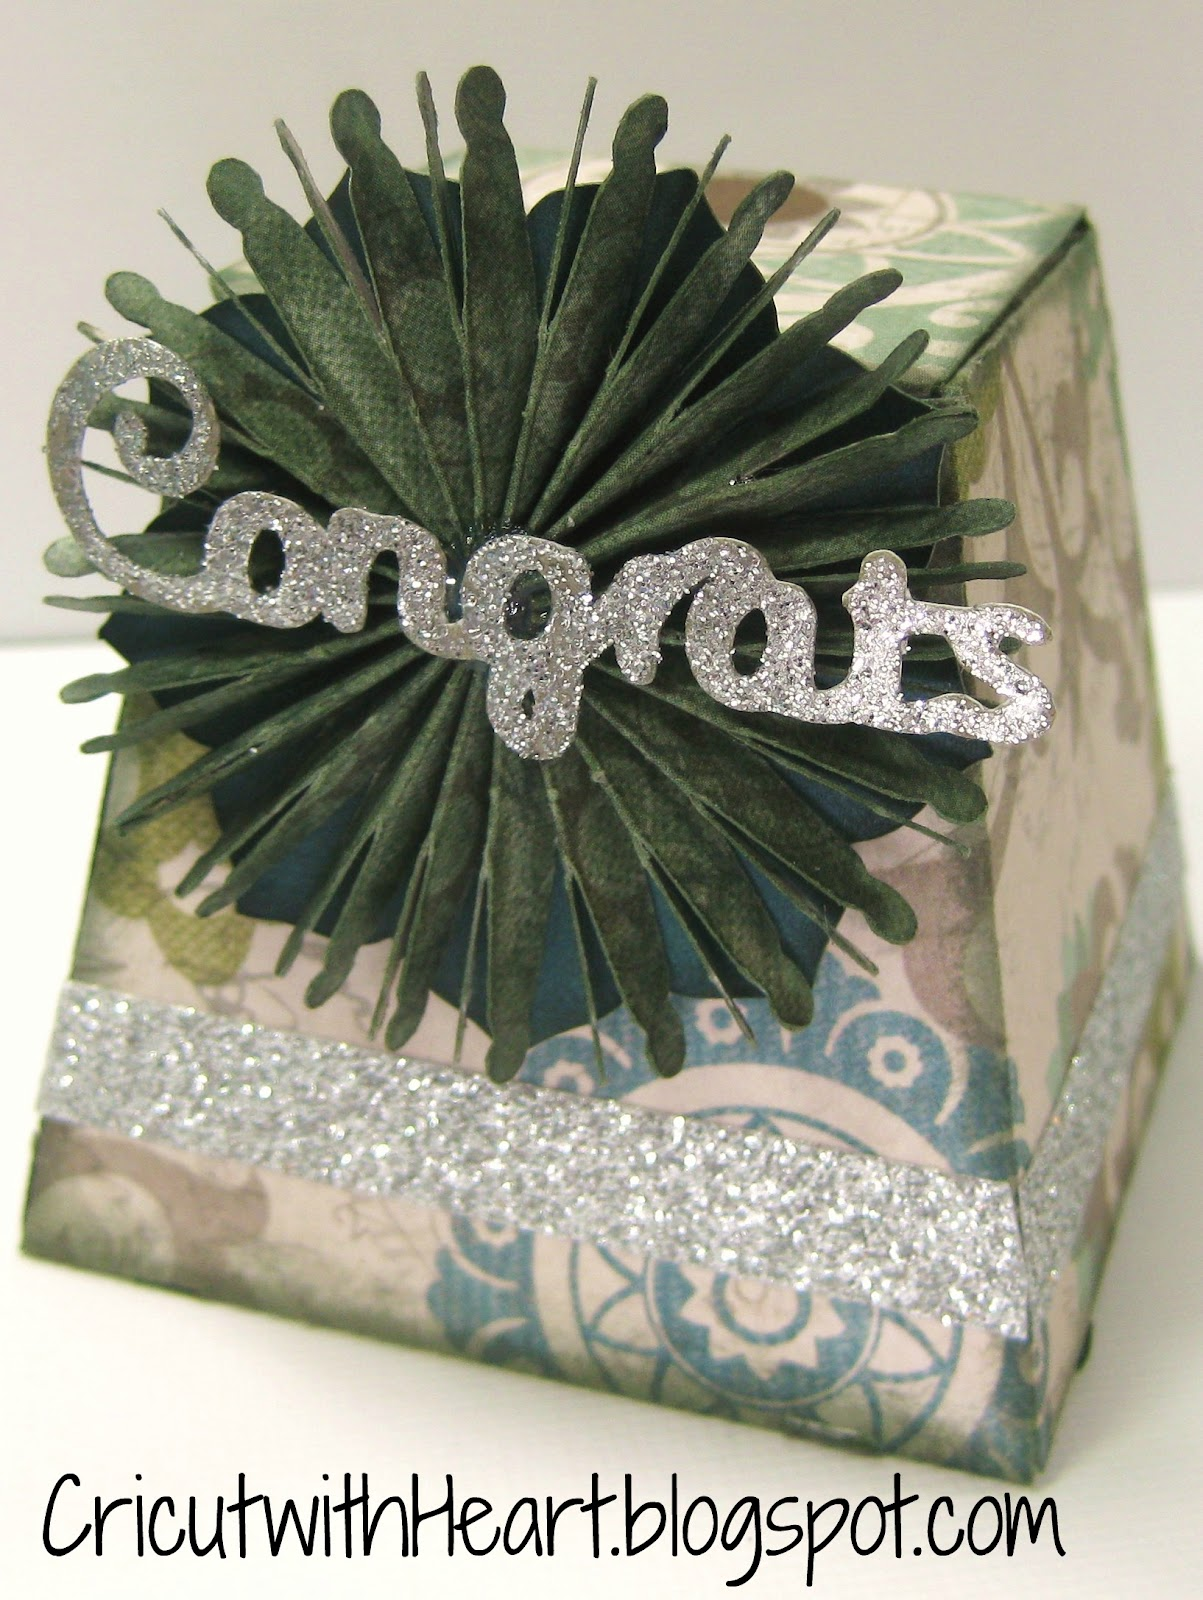 Fantabulous cricut challenge blog fantabulous friday 165 wedding - This Is Really A Versatile Little Box And Such A Cool Shape I Hope This Has Inspired You To Make Something Today Please Leave Me A Comment And Let Me